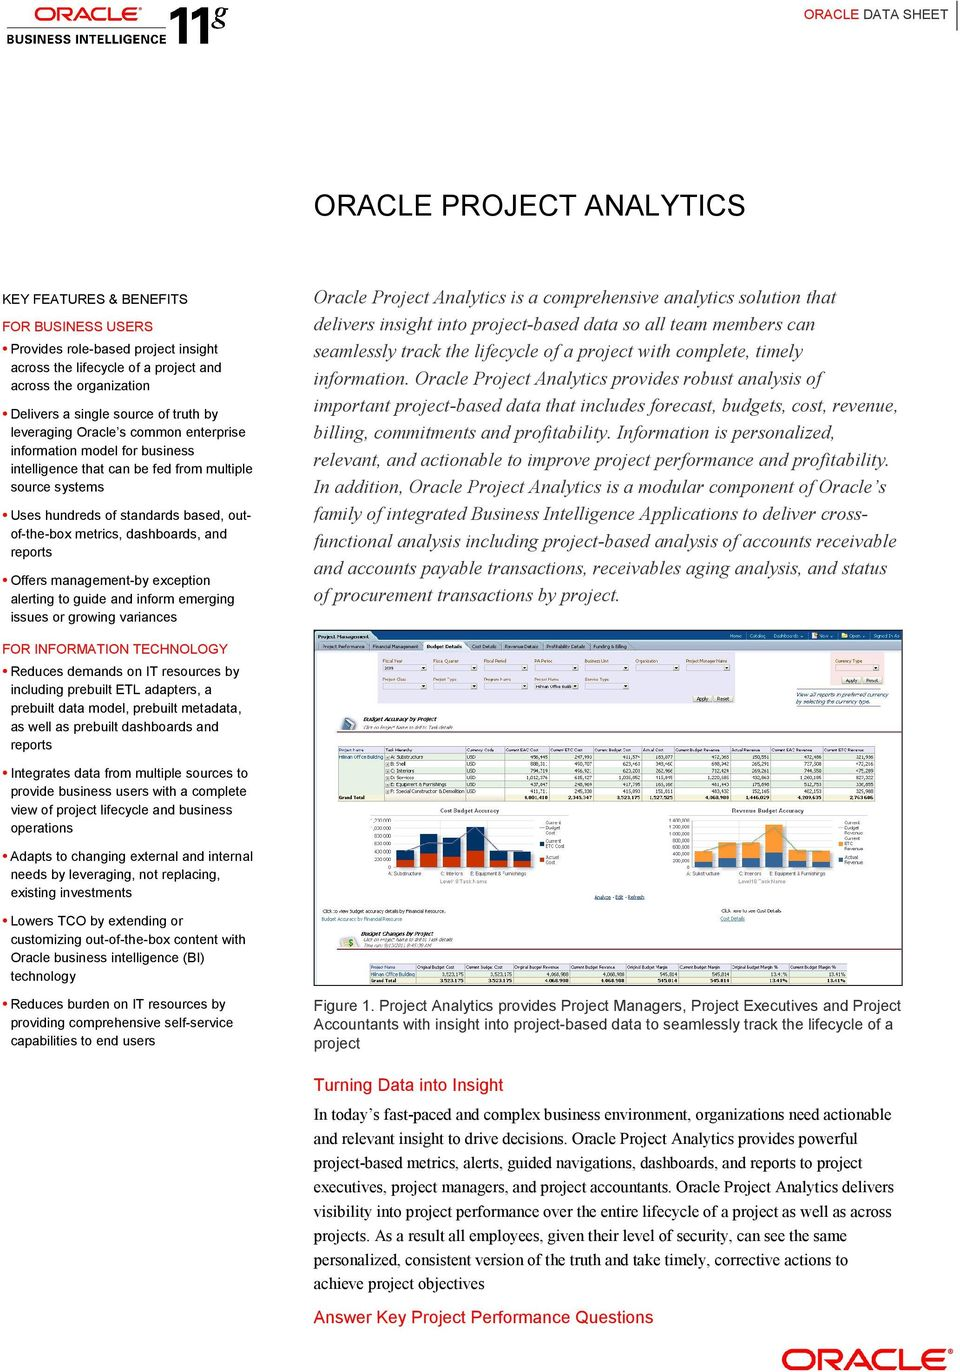 and reports Offers management-by exception alerting to guide and inform emerging issues or growing variances Oracle Project Analytics is a comprehensive analytics solution that delivers insight into